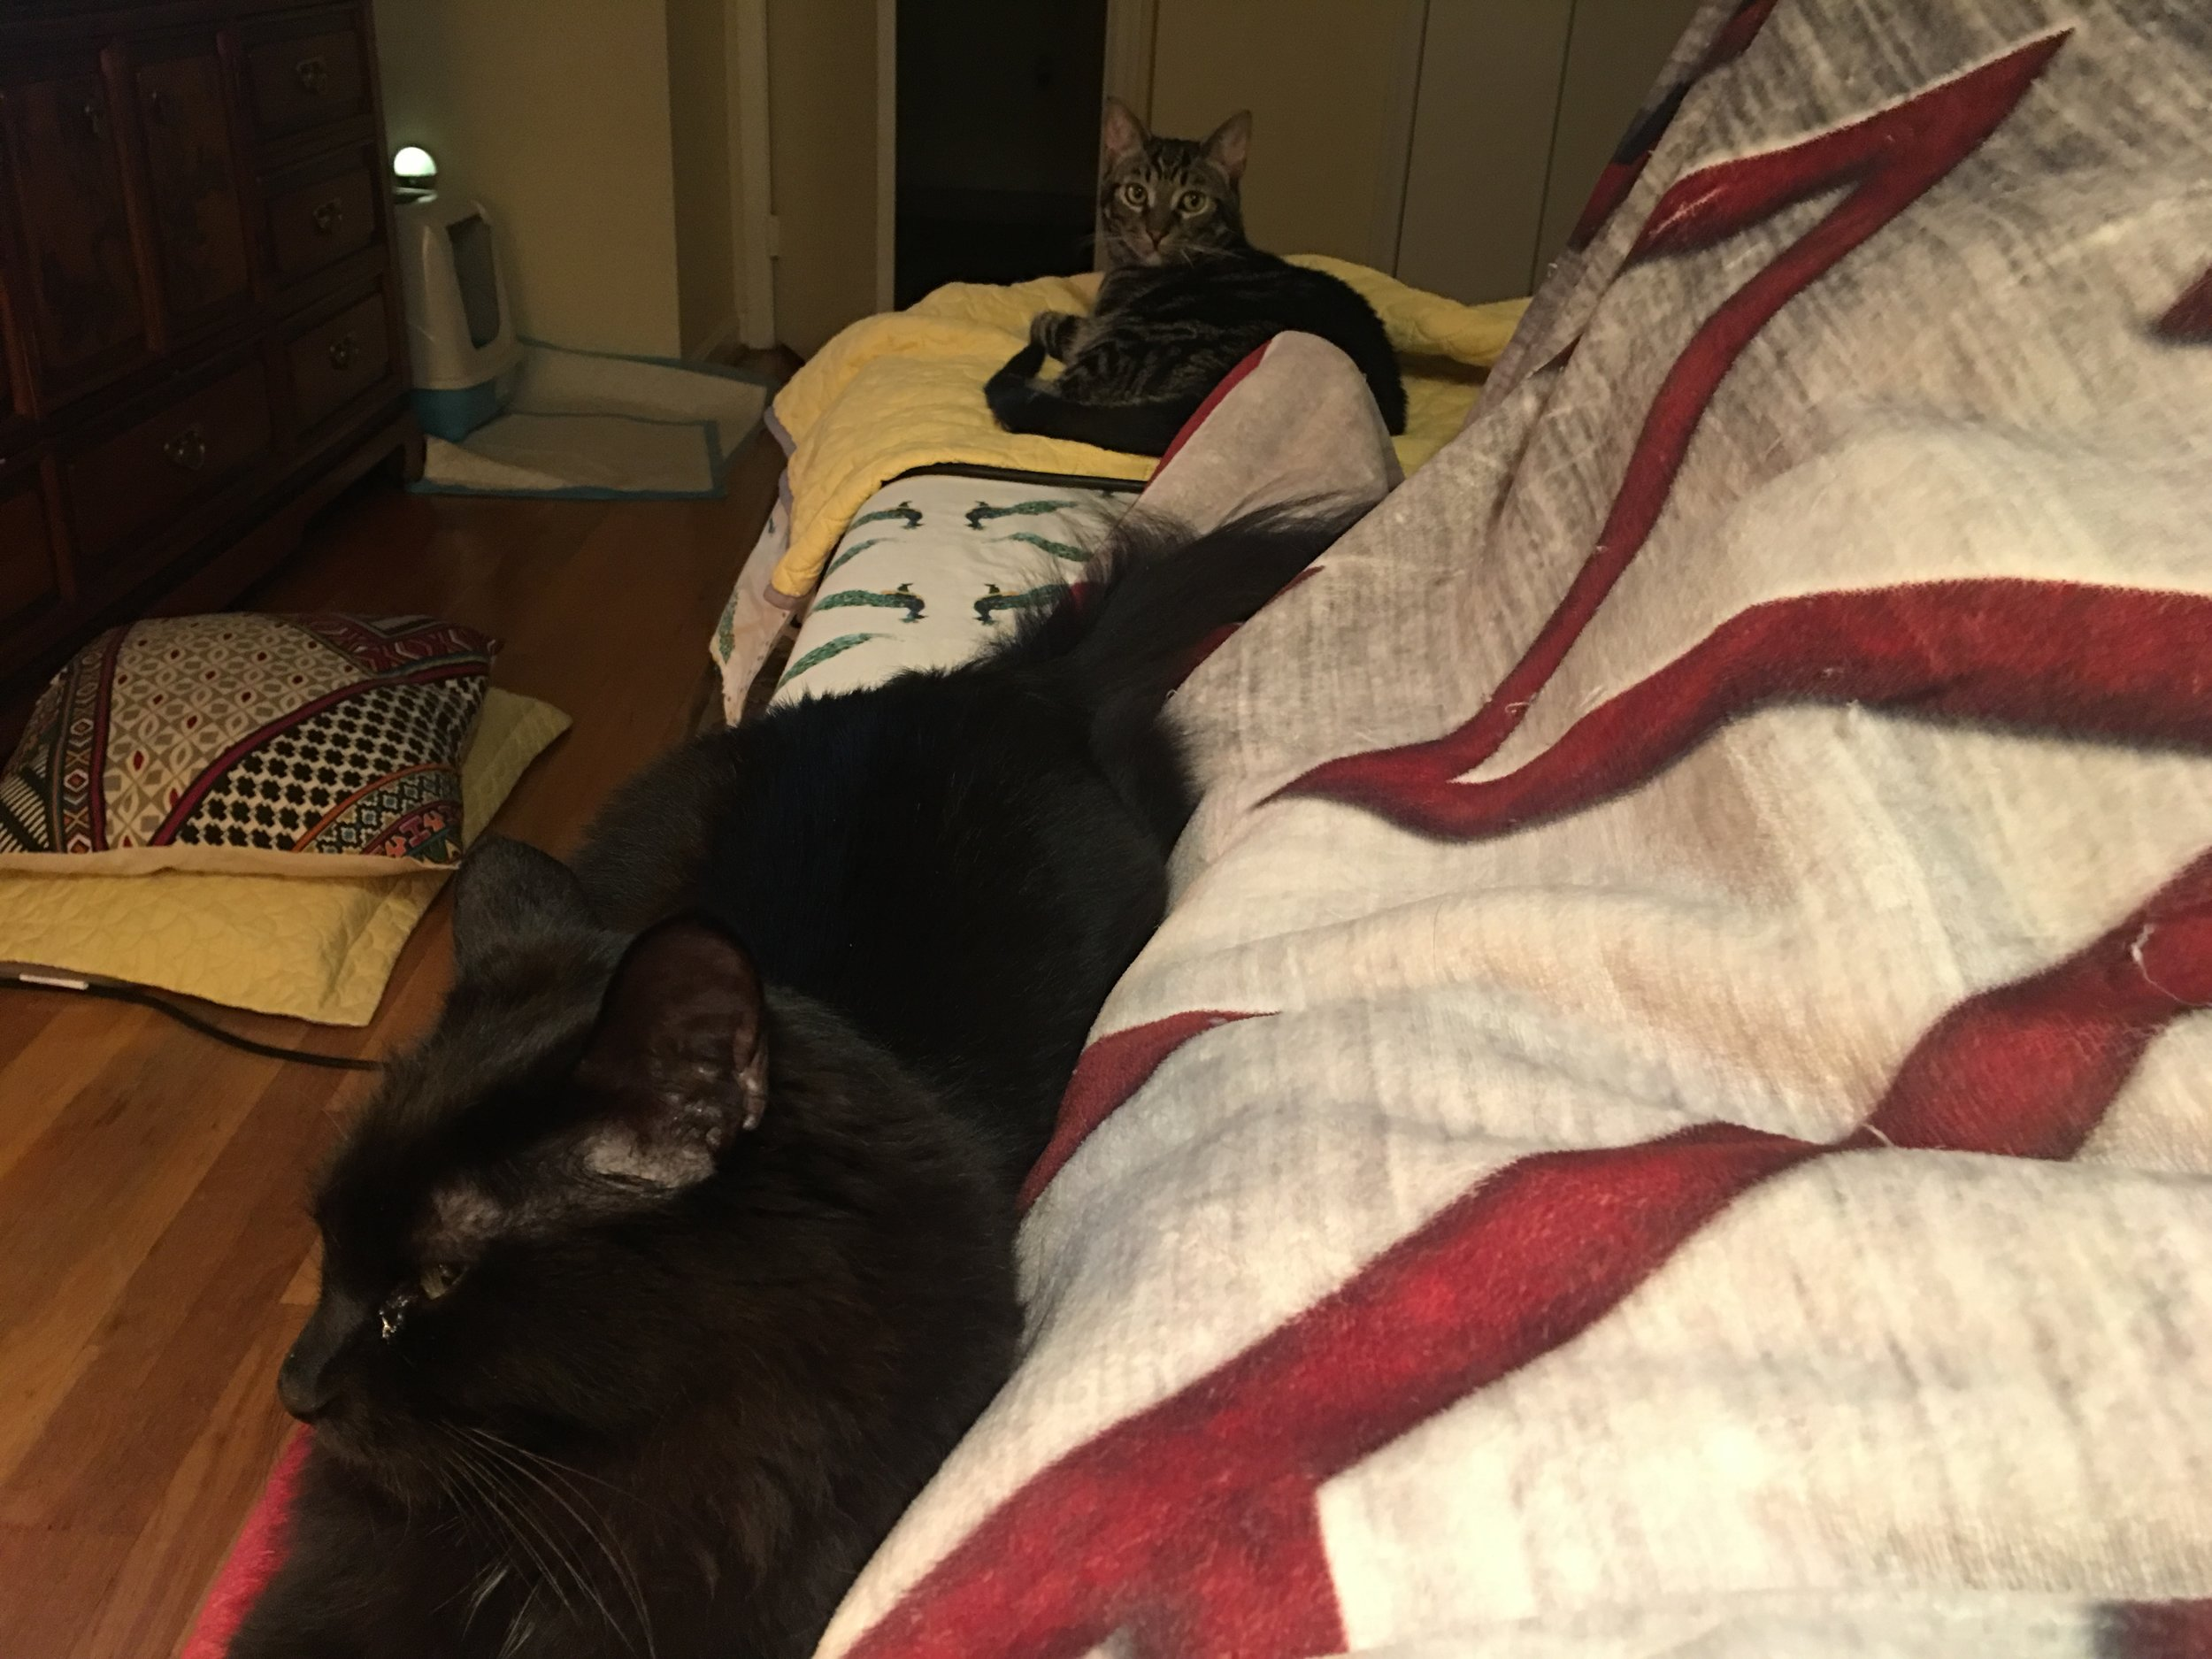 More of my nursing care buddies. I love that they choose to lay in the smallest spot possible, just to lay near me. They keep getting pushed off my lap, because they can't lay on my knee, but they want to be near. They are so sweet that I can't stop giving them too many treats. I'm not sure which they love more, me or the treats; but, I don't want to pull too much at that thread.